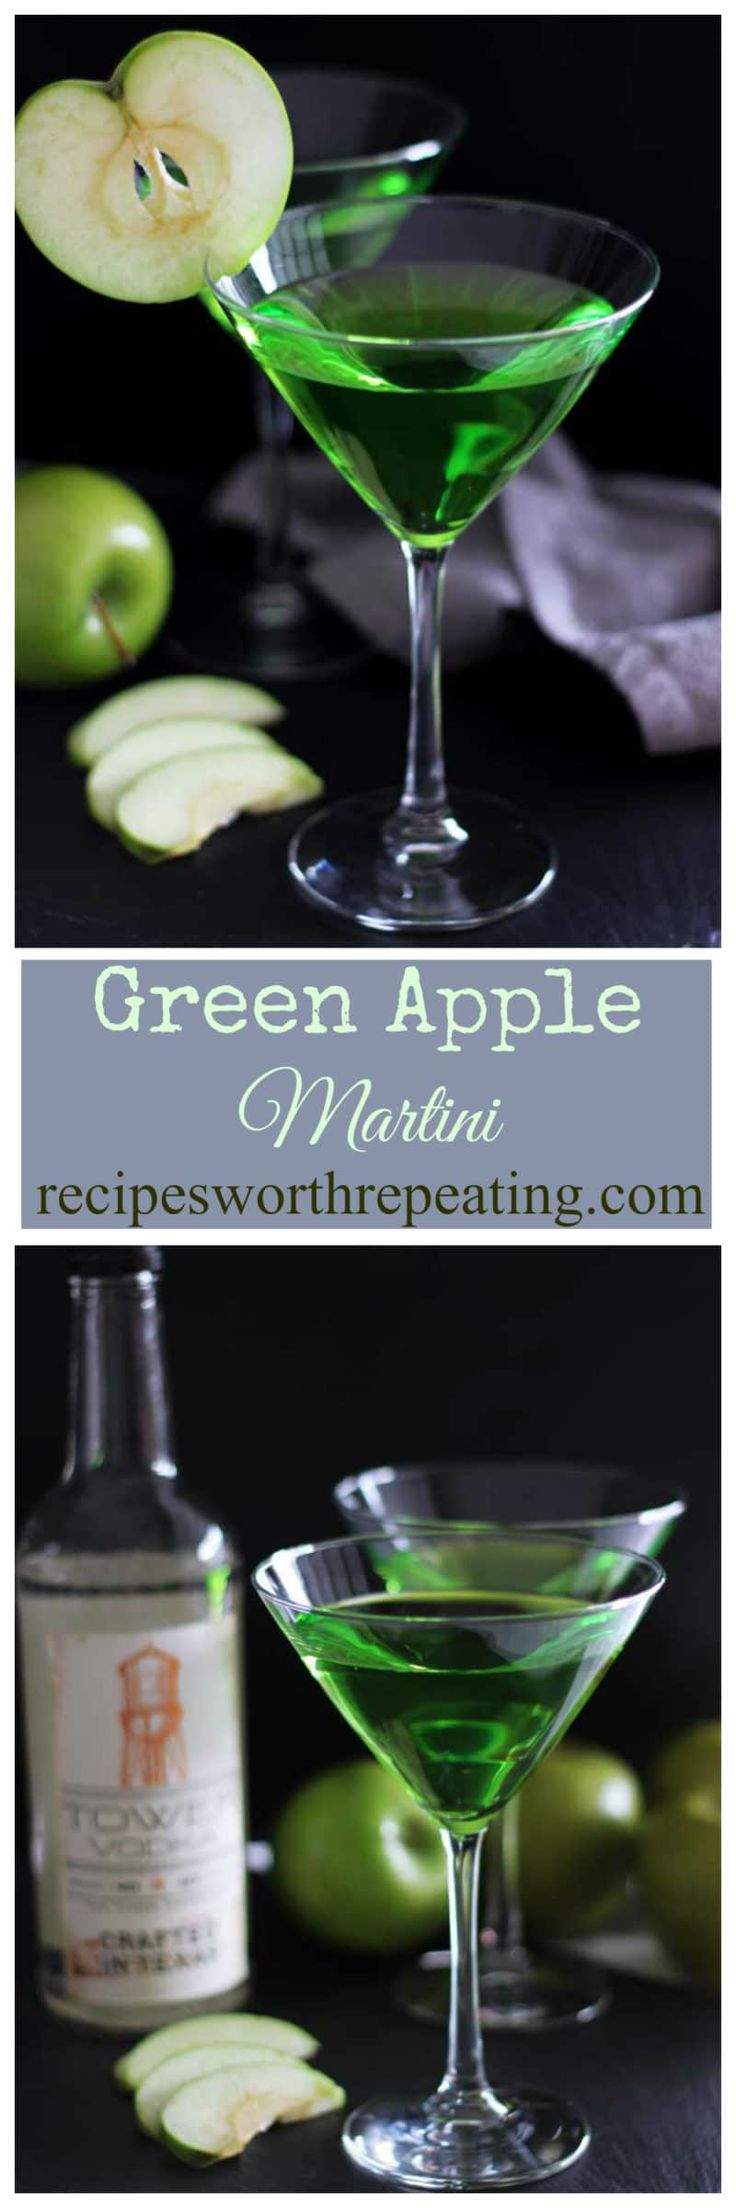 Green Apple Martini | Recipes Worth Repeating | St. Patrick's Day | Holiday | Drink | Cocktail